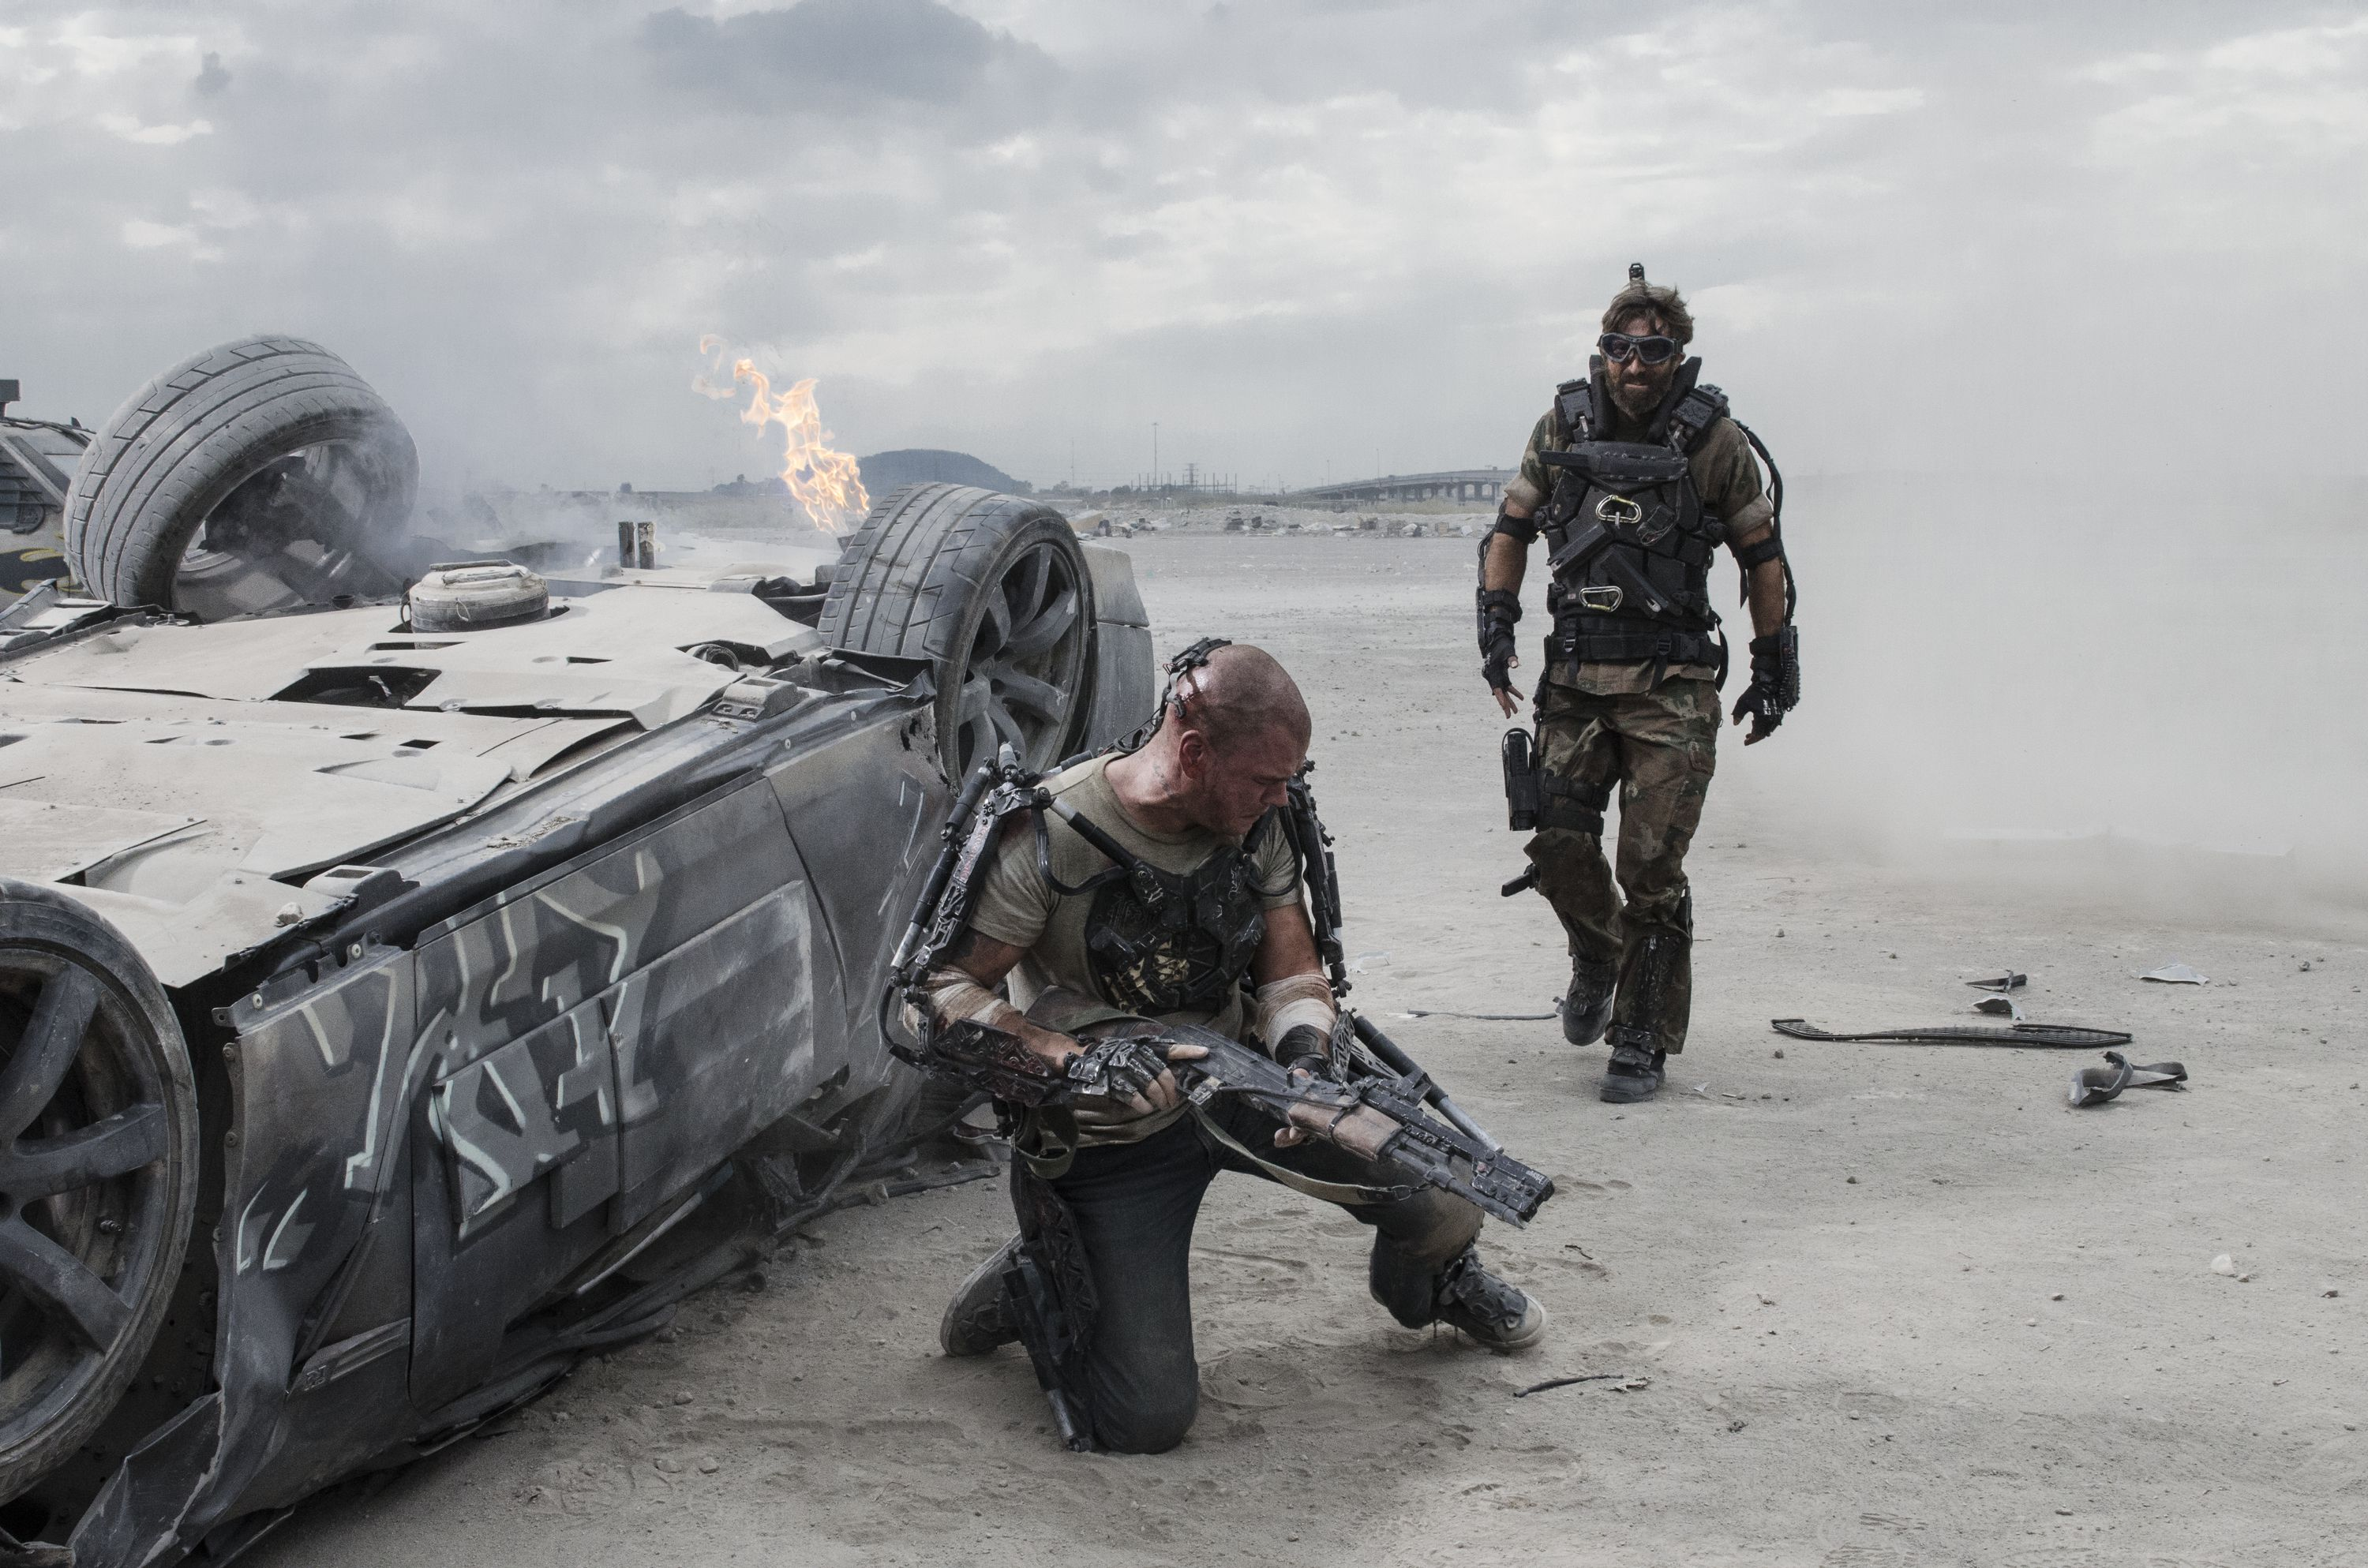 An image from Elysium